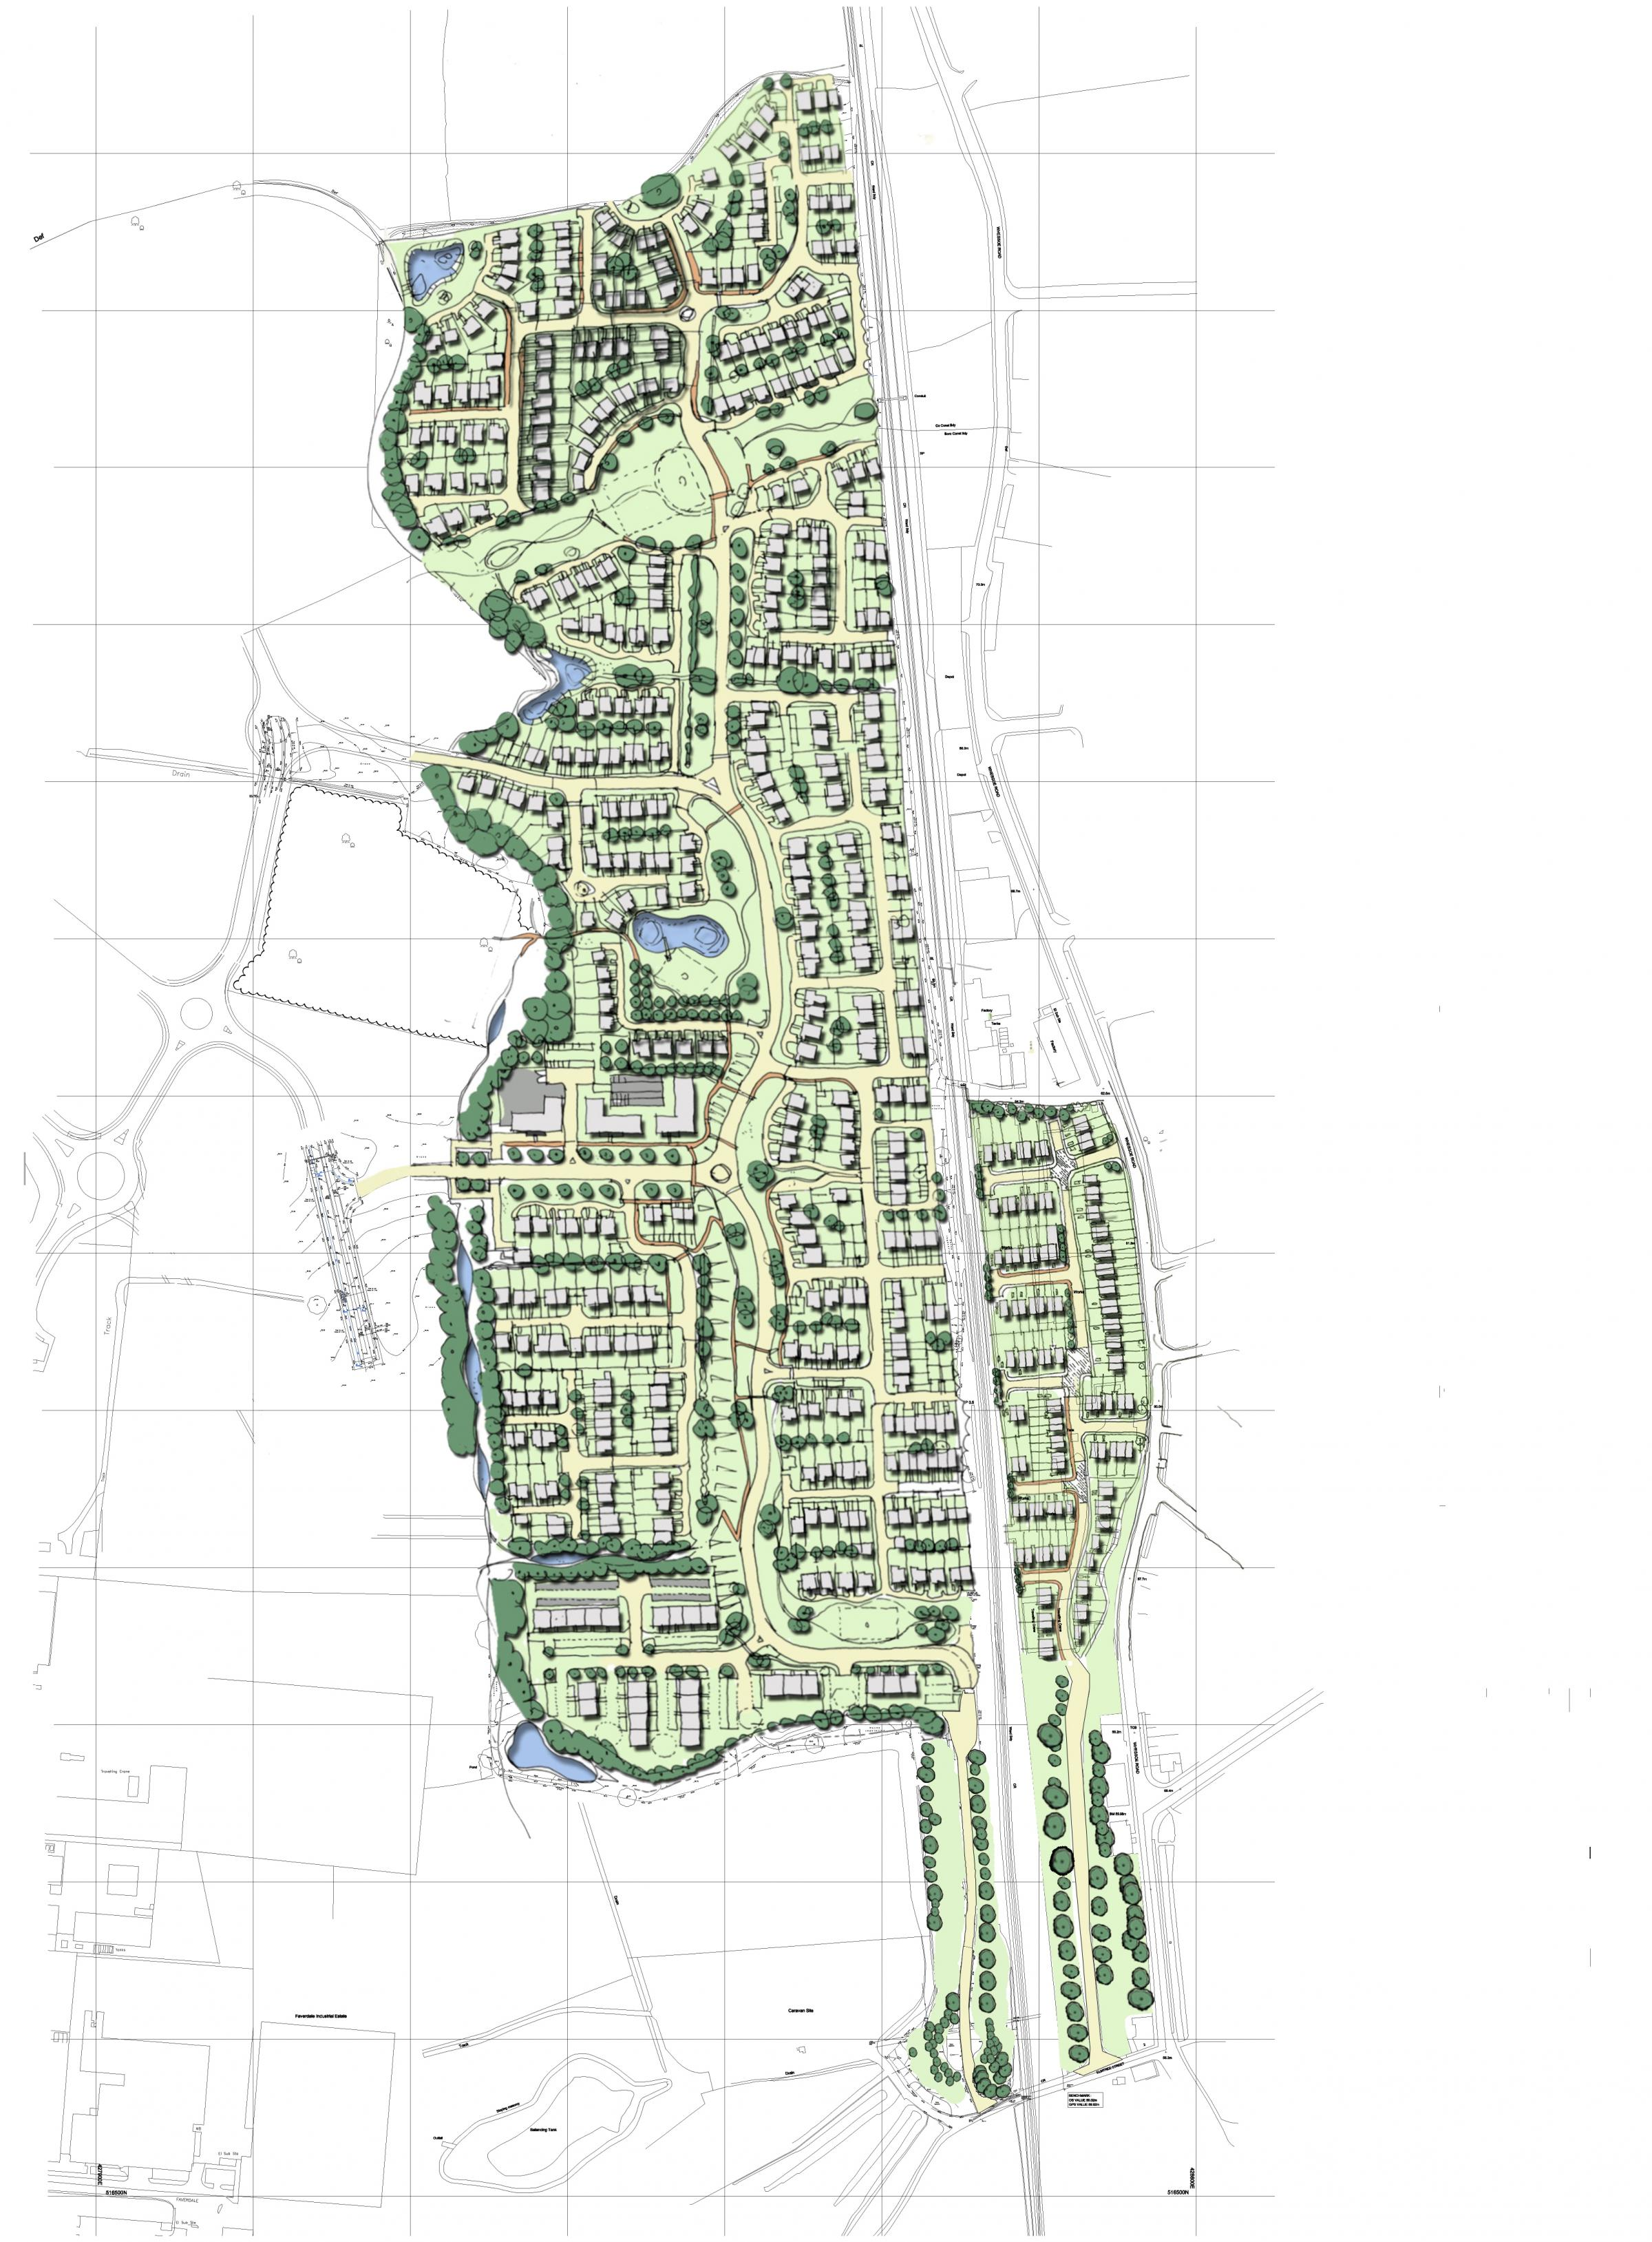 The masterplan for the proposed Faverdale Garden Village development